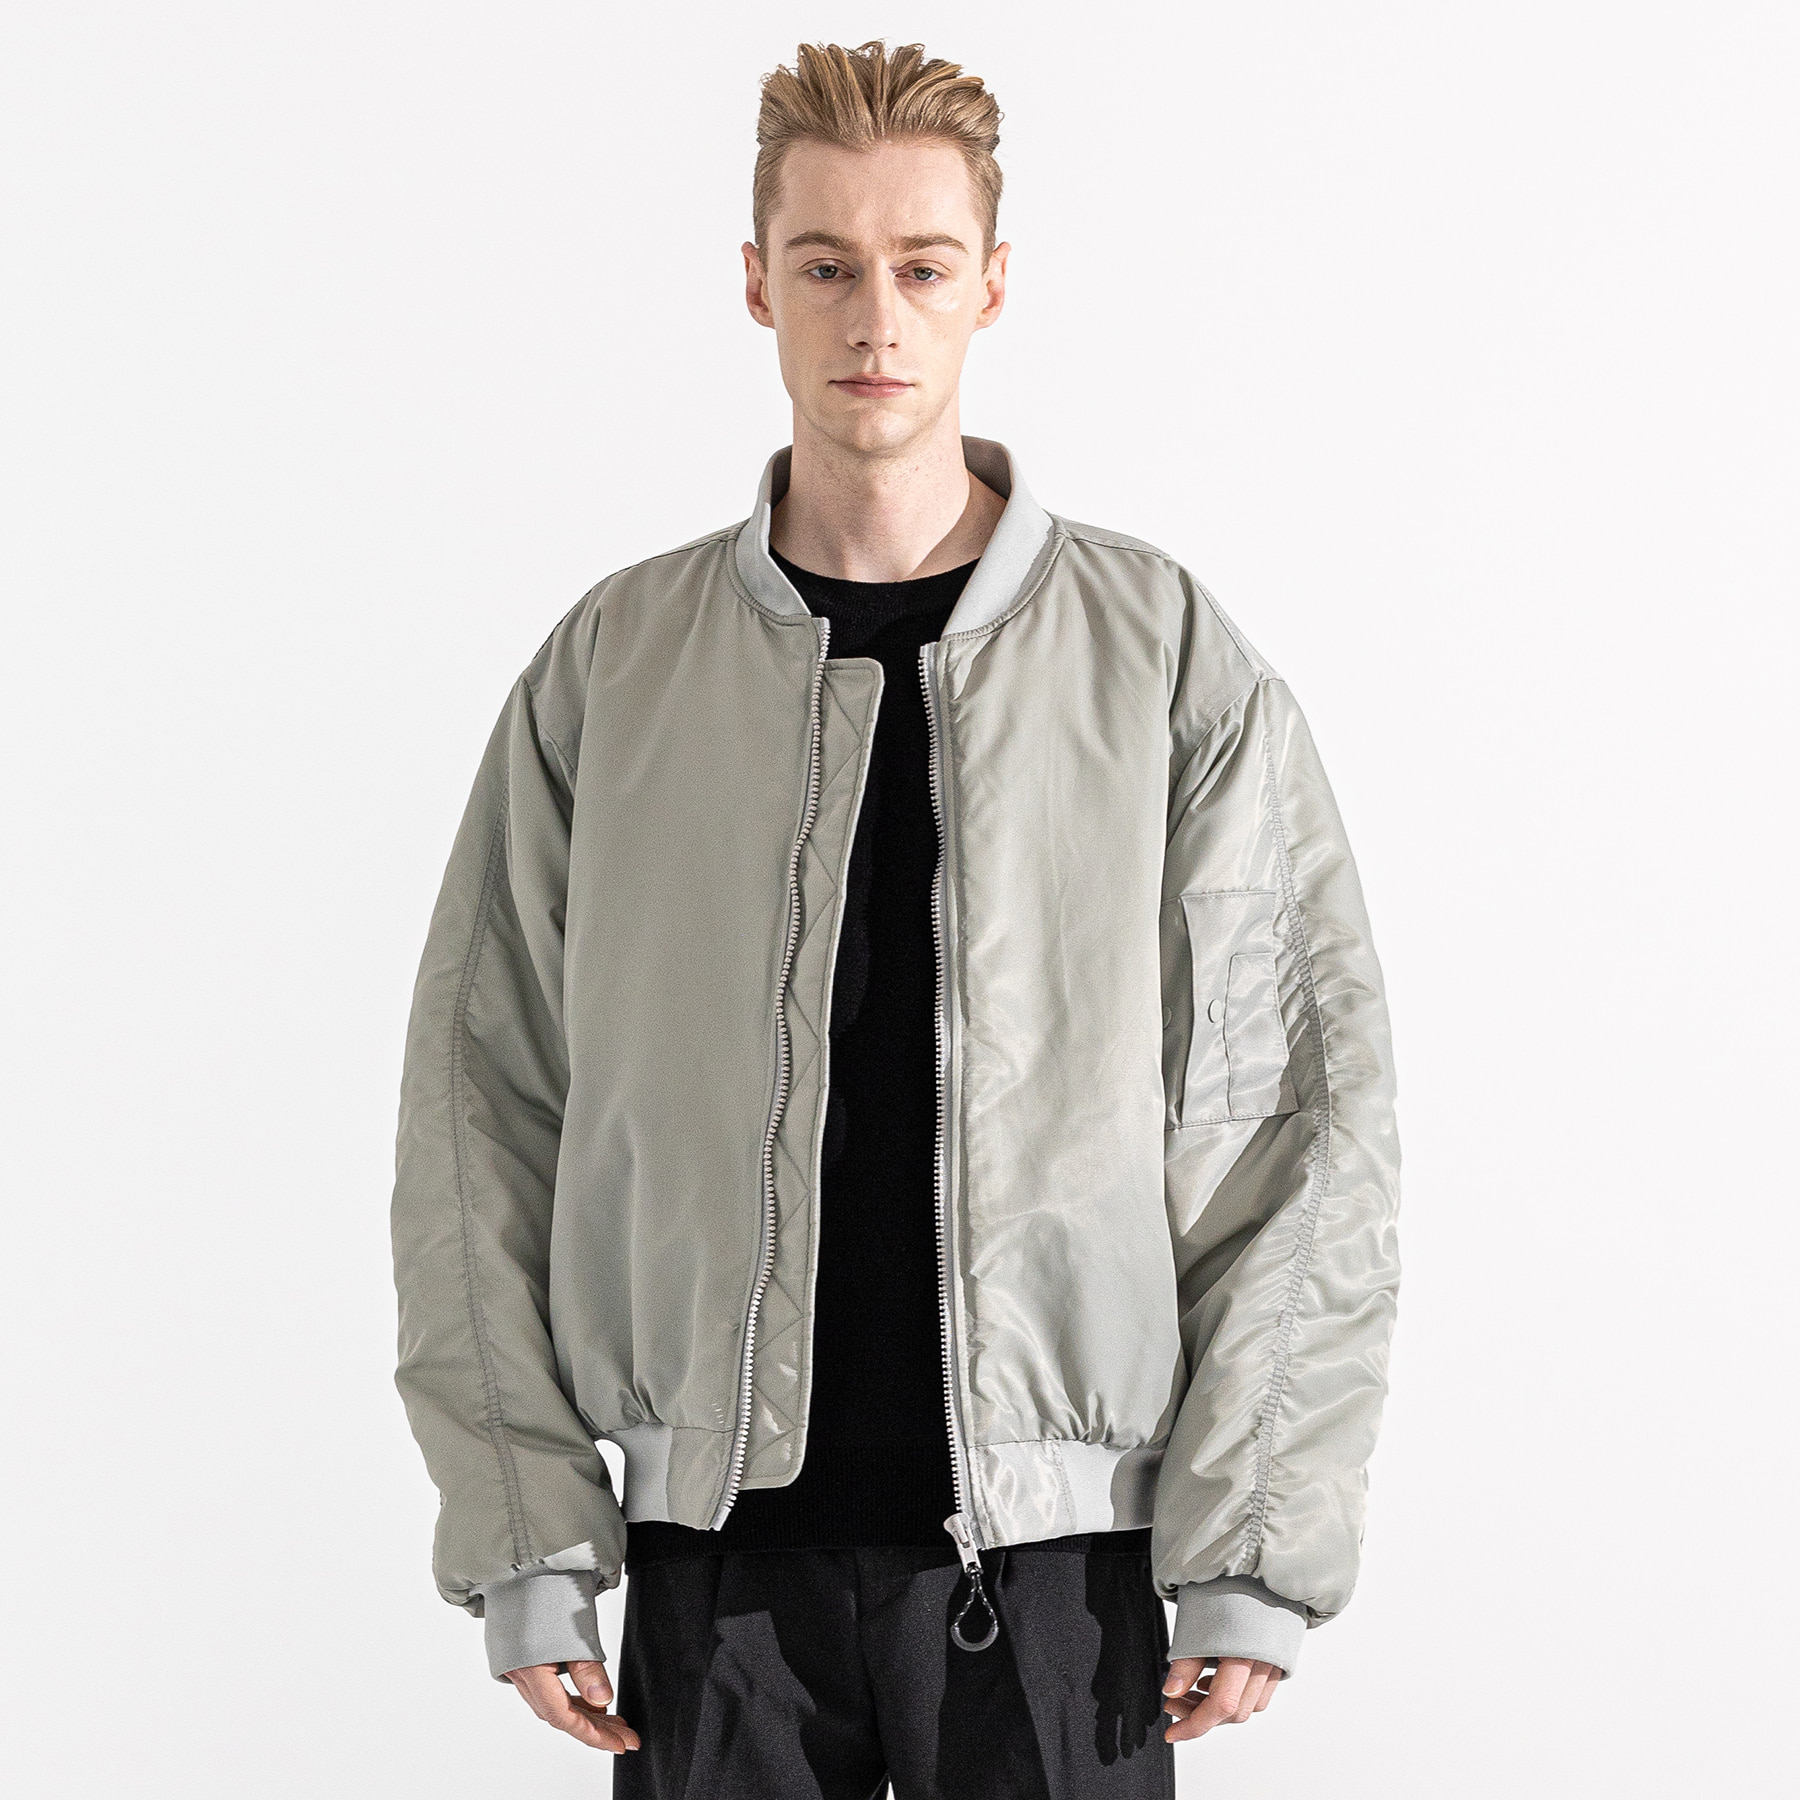 6OZ SHRRING OVERSIZED MA-1 JACKET MWZPD002-GY